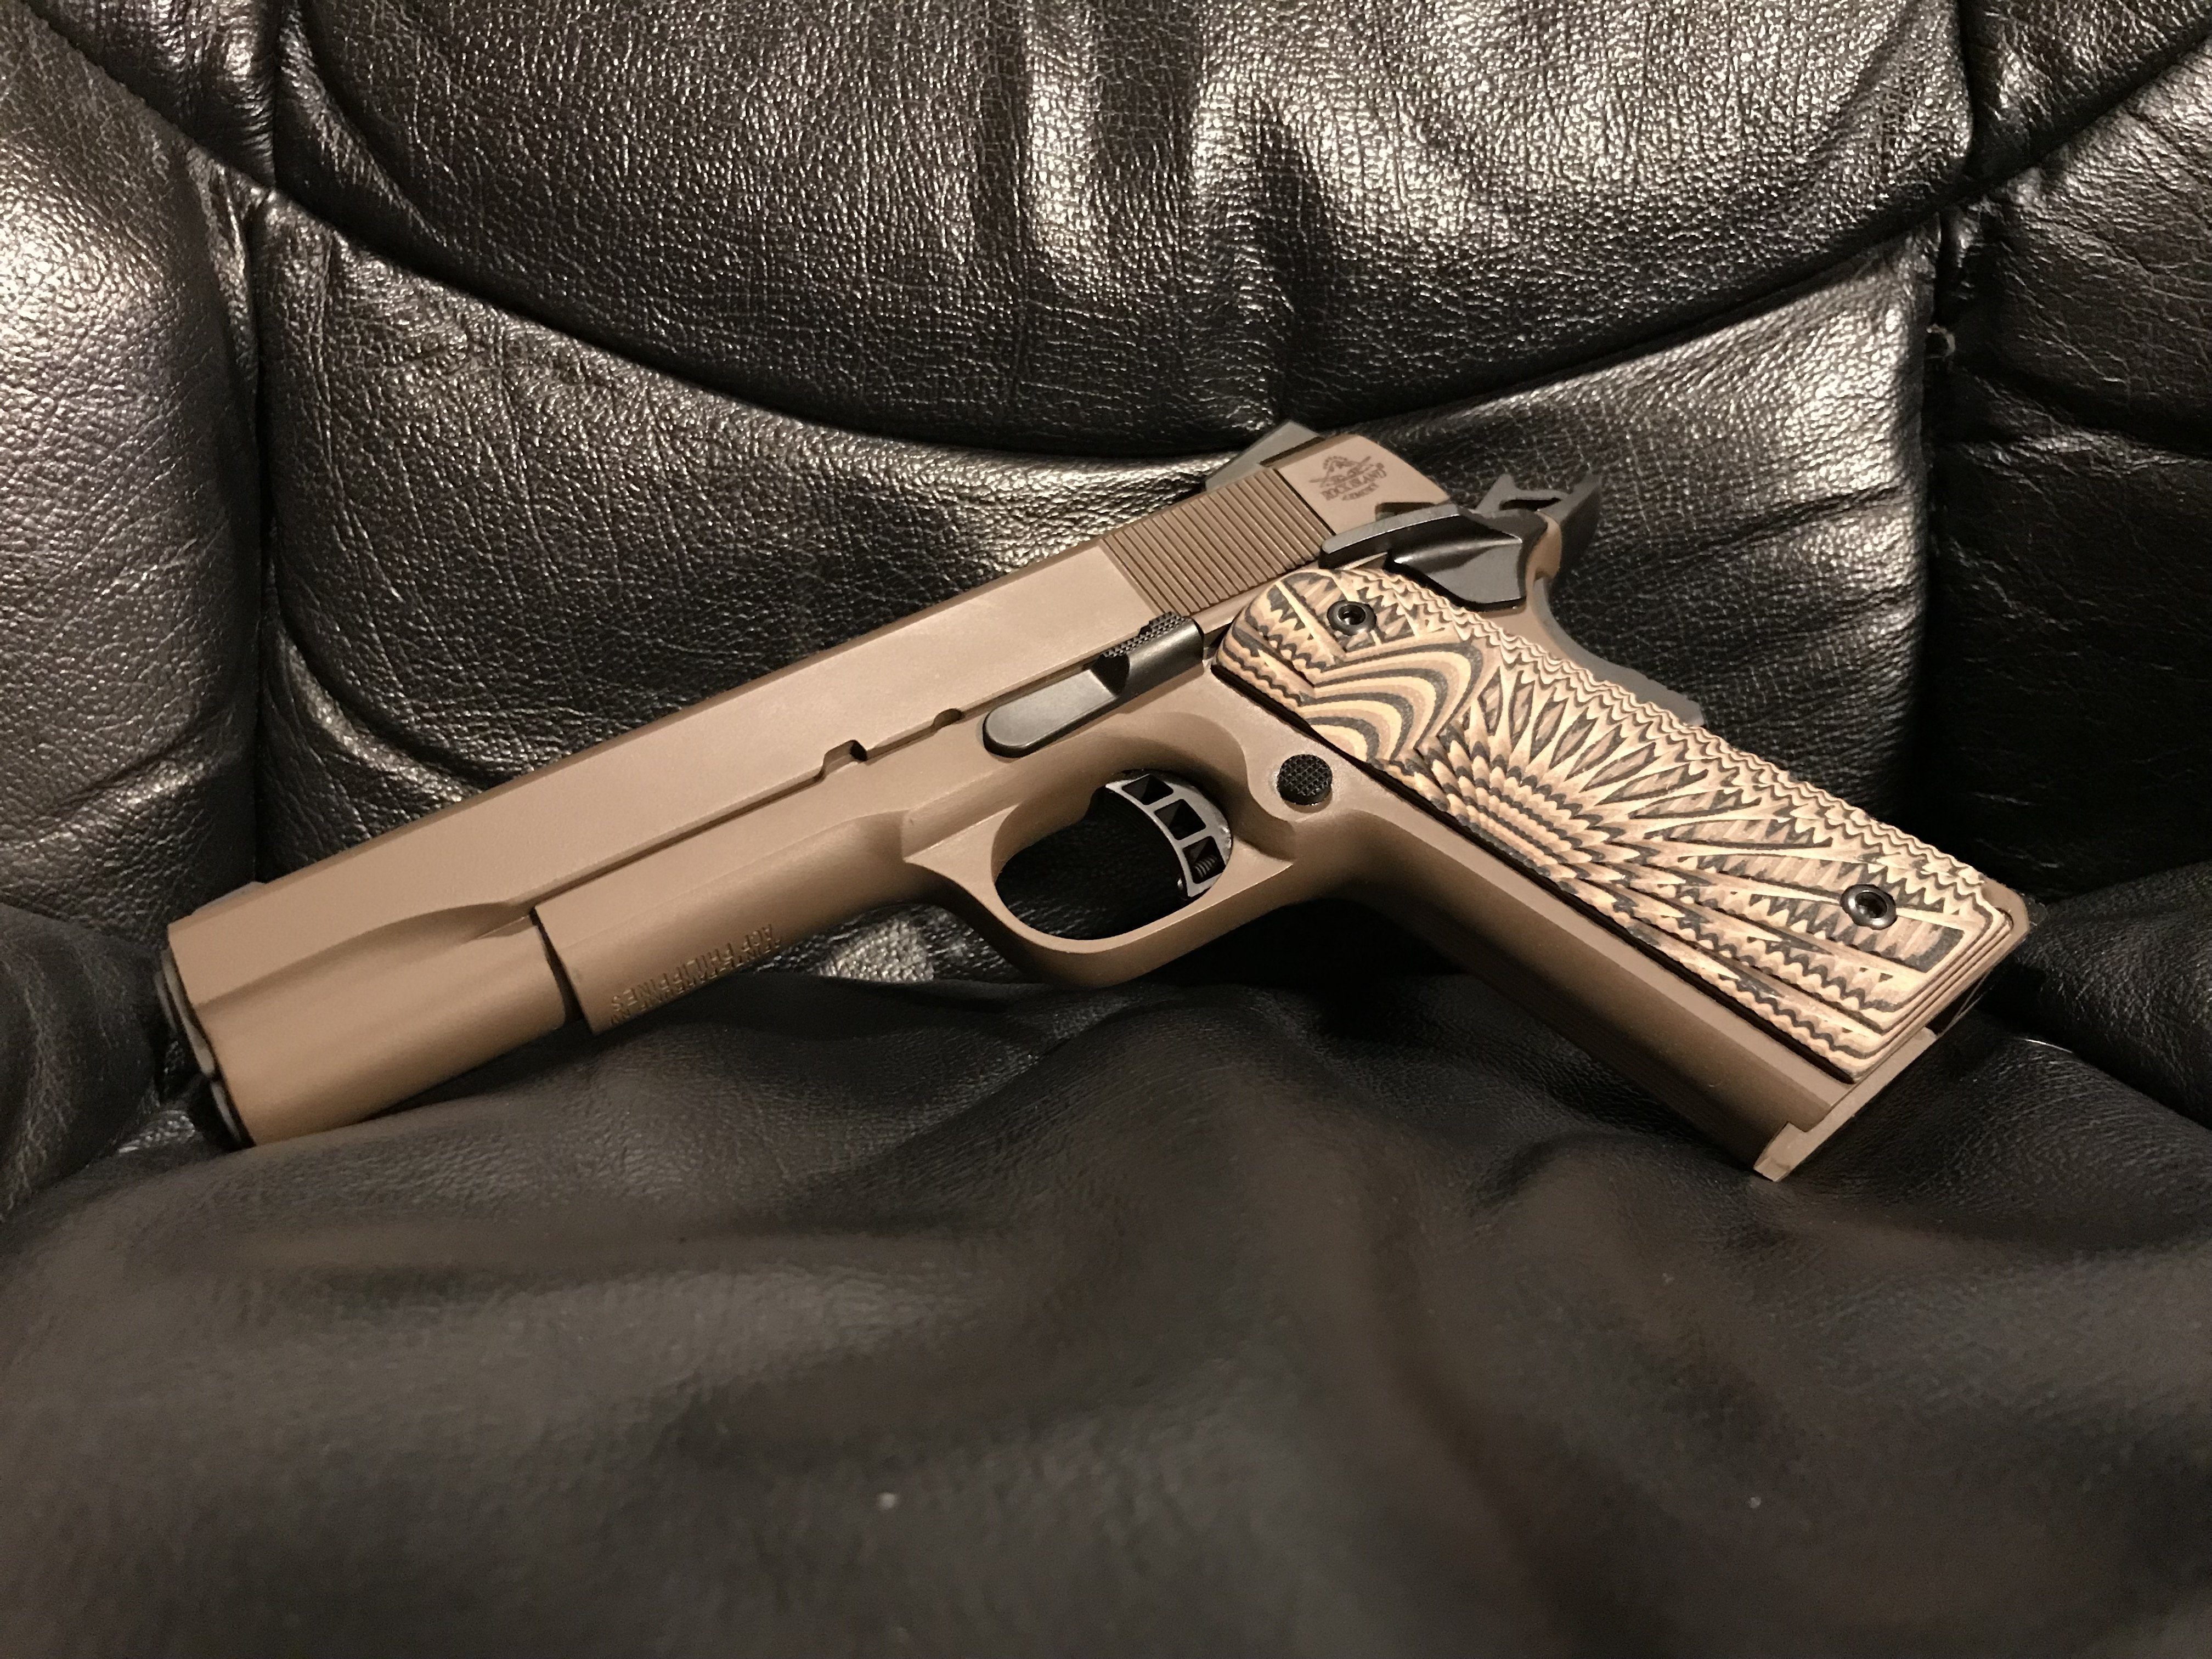 Ever seen one in Patriot Brown? - 1911Forum